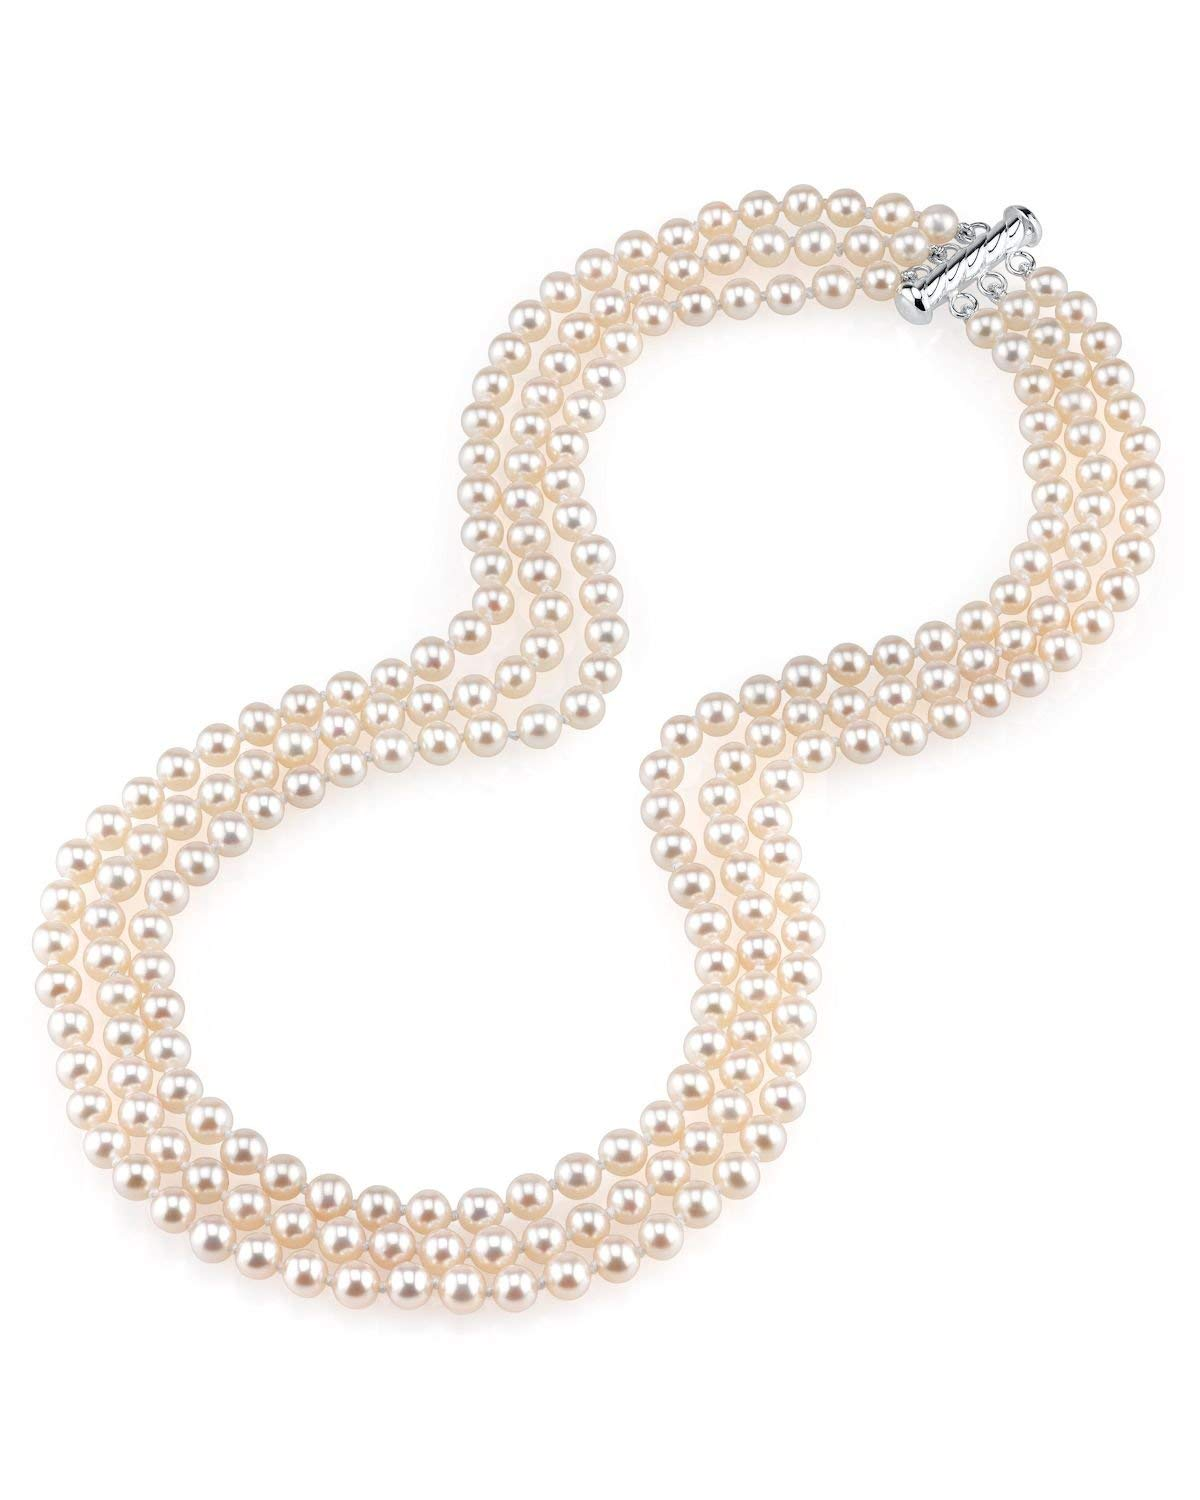 THE PEARL SOURCE 5.0-5.5mm AAAA Quality Triple Strand White Freshwater Cultured Pearl Necklace for Women in 16-17-18'' Princess Length